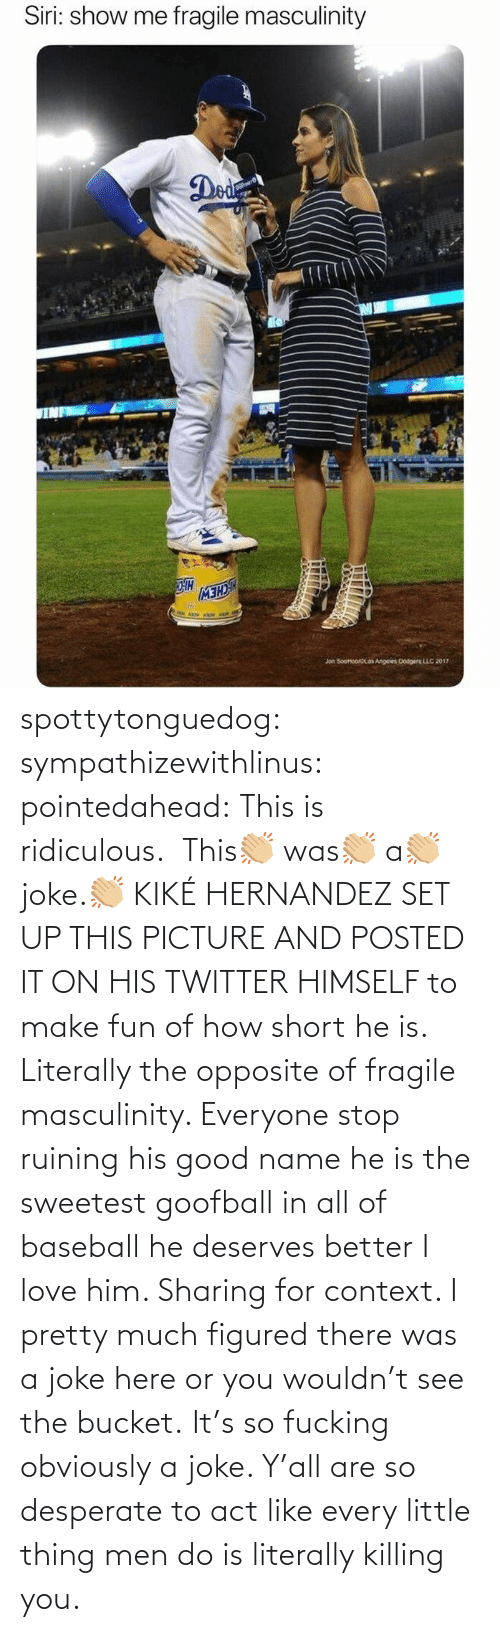 context: spottytonguedog:  sympathizewithlinus:   pointedahead: This is ridiculous.  This👏🏼 was👏🏼 a👏🏼 joke.👏🏼 KIKÉ HERNANDEZ SET UP THIS PICTURE AND POSTED IT ON HIS TWITTER HIMSELF to make fun of how short he is. Literally the opposite of fragile masculinity. Everyone stop ruining his good name he is the sweetest goofball in all of baseball he deserves better I love him.    Sharing for context. I pretty much figured there was a joke here or you wouldn't see the bucket.    It's so fucking obviously a joke. Y'all are so desperate to act like every little thing men do is literally killing you.